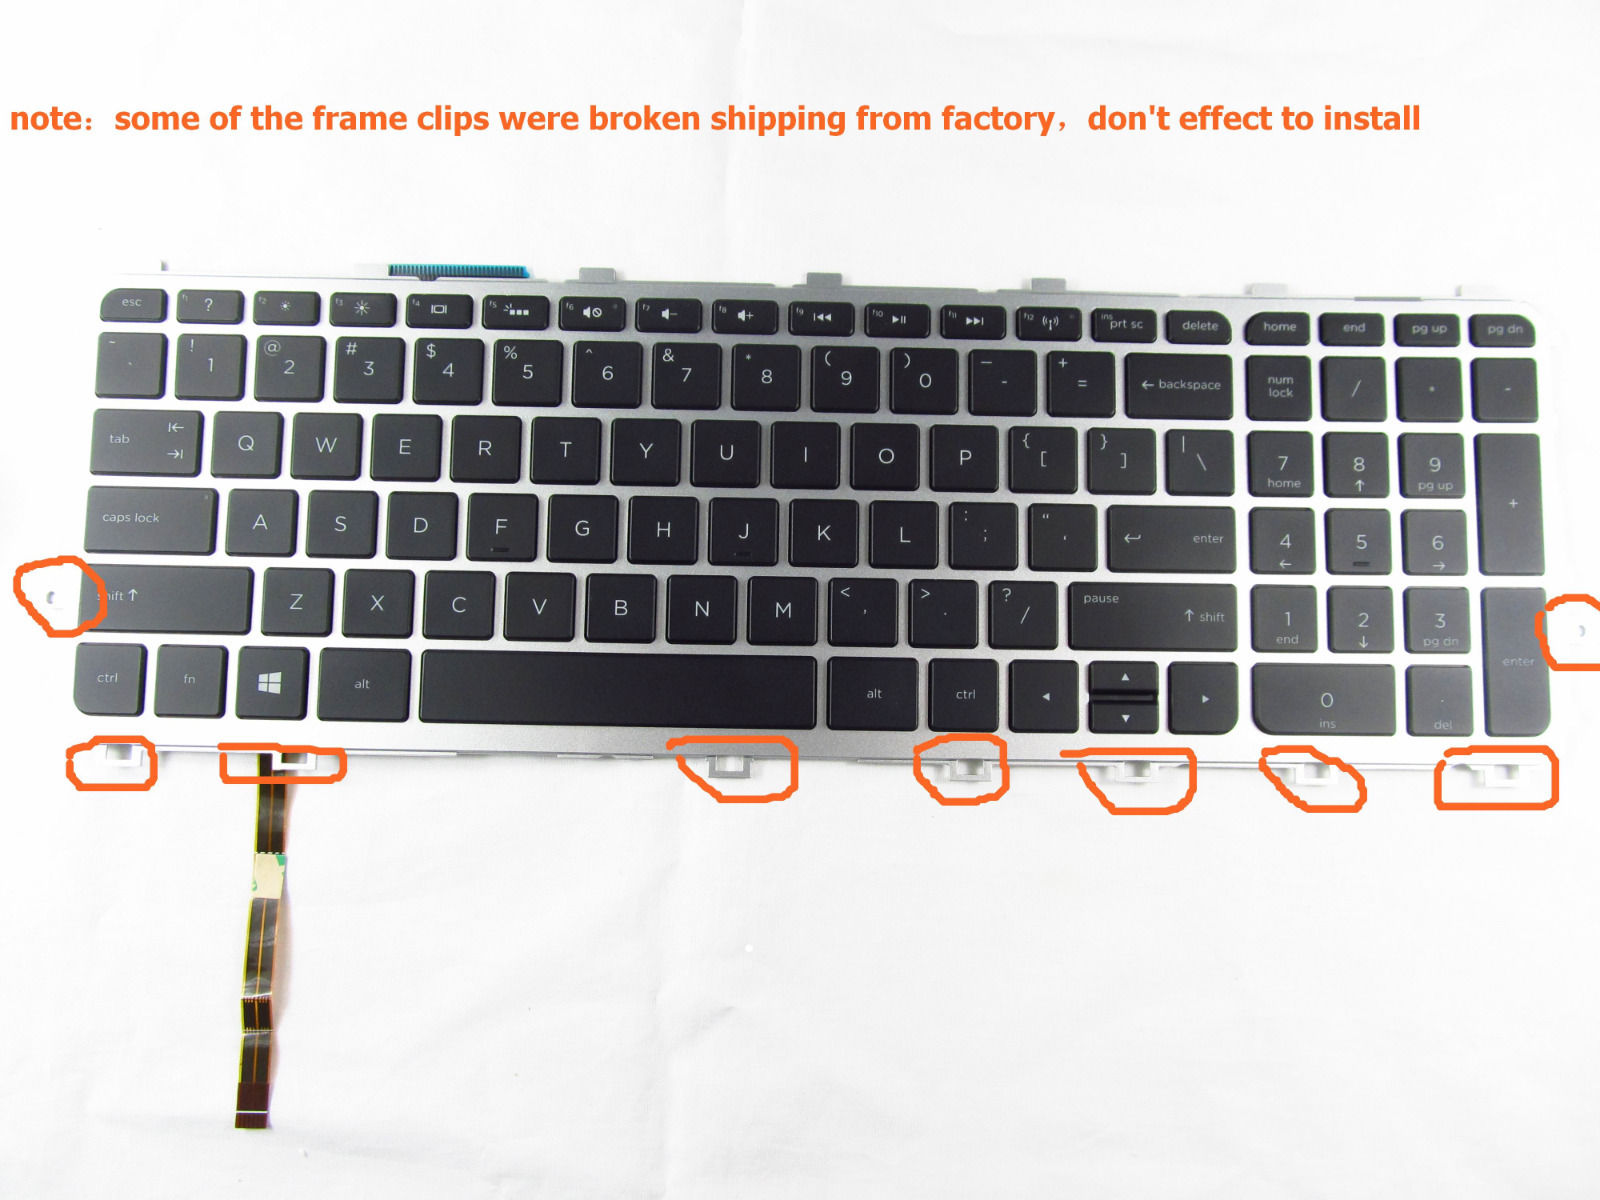 NEW For HP Envy m7-j100 m7-j120dx m7-j178ca US Keyboard Frame Backlit Accessory new for hp envy touchsmart us keyboard with backlit frame compatible v140626ds1 v140626a 760743 001 6037b0100201 97 00076 us 0b